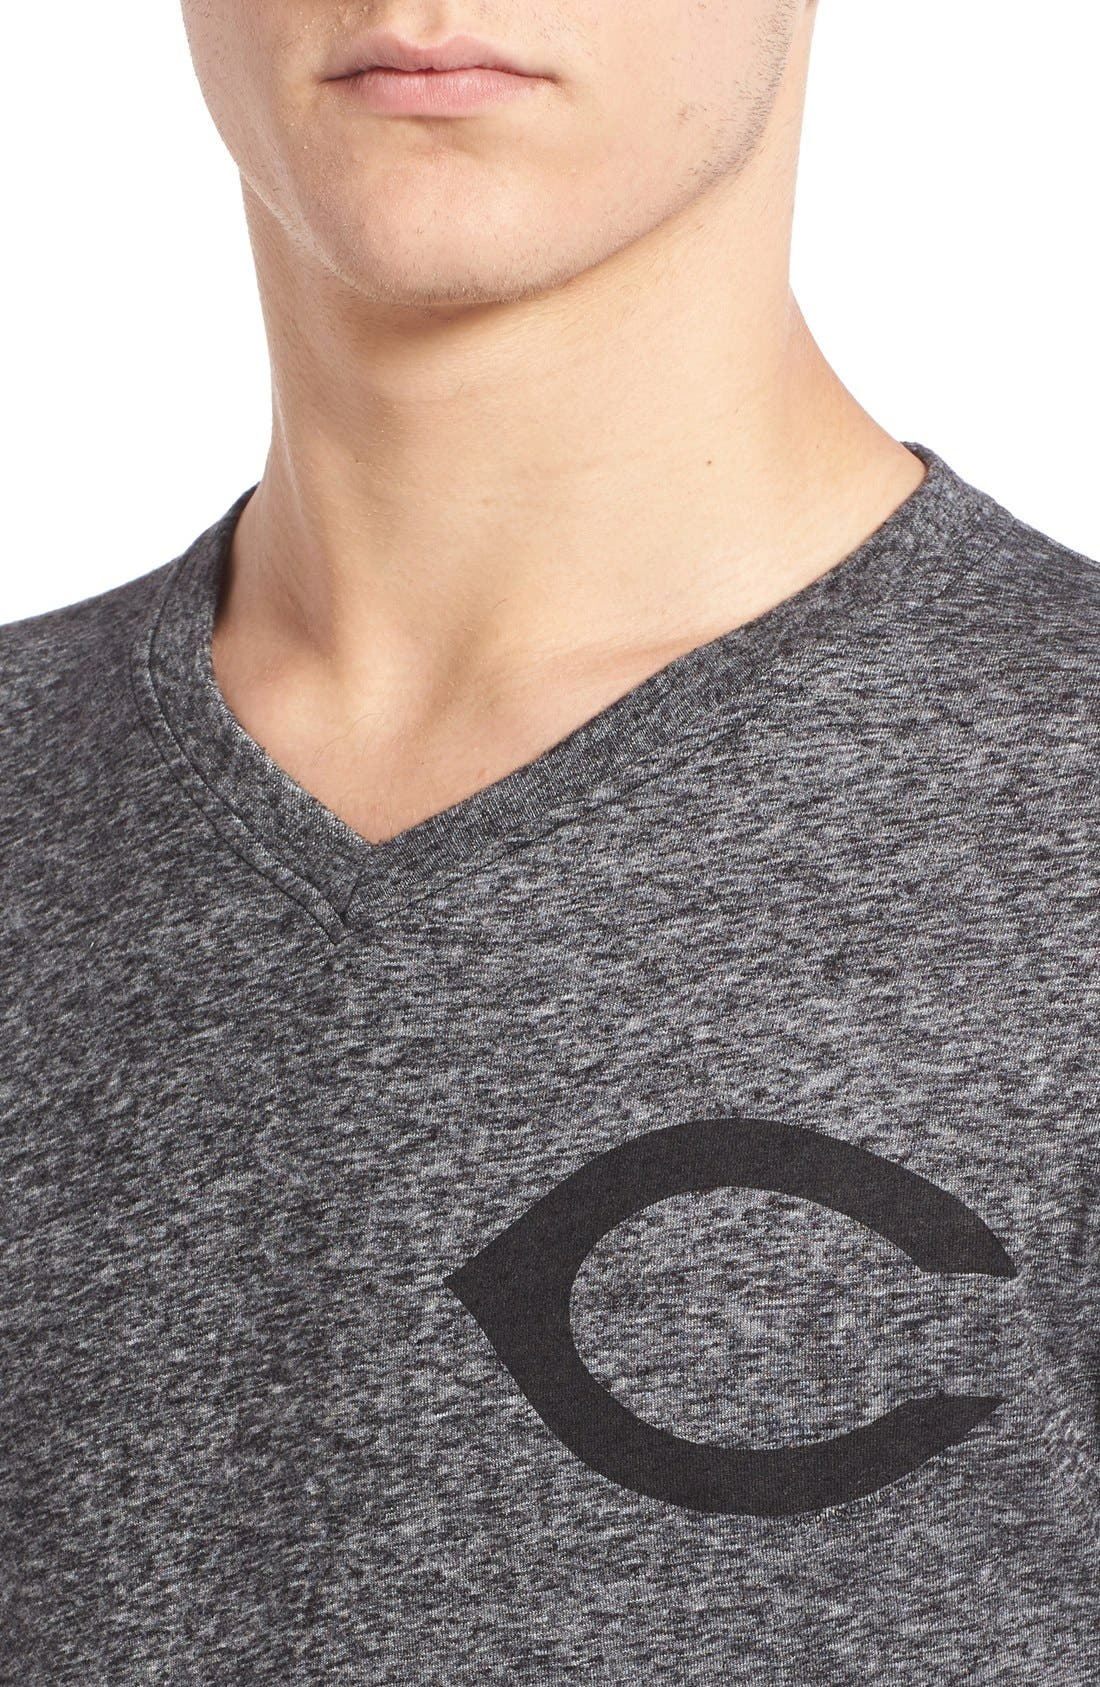 'Cincinnati Reds - Onyx' Trim Fit V-Neck T-Shirt,                             Alternate thumbnail 4, color,                             Charcoal-Black